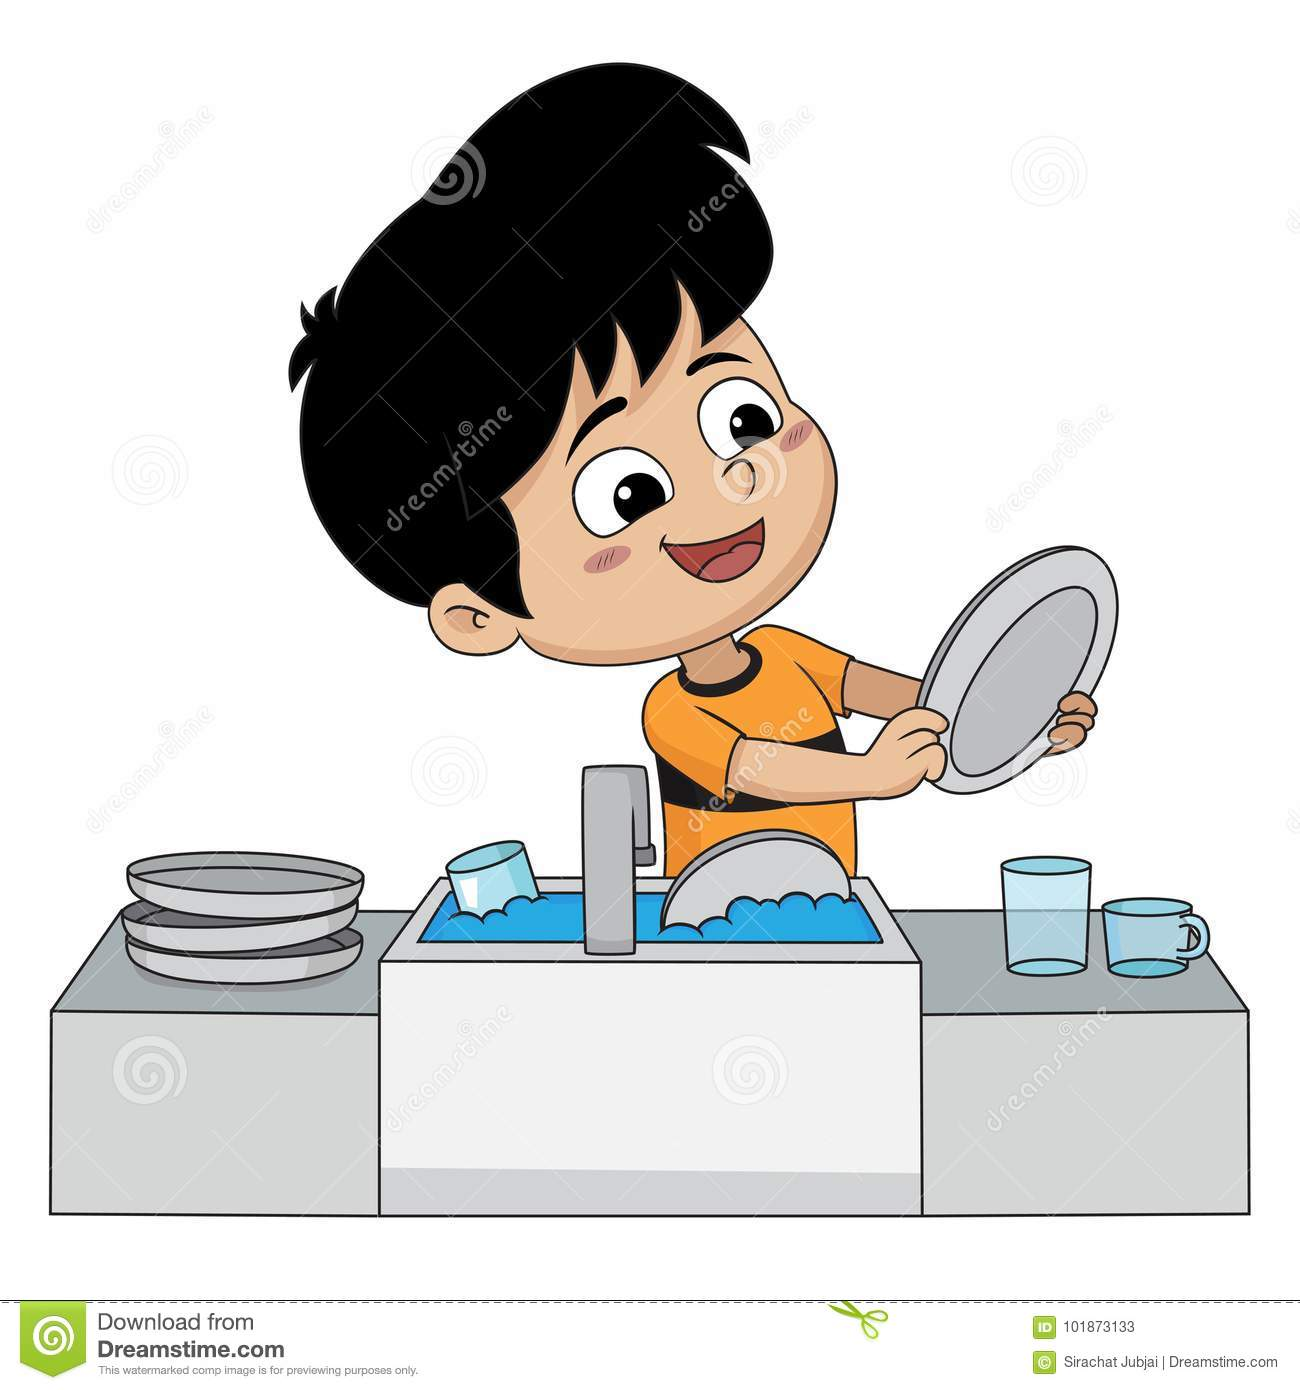 Kid Help Their Parents Wash Dishes. Stock Vector ...